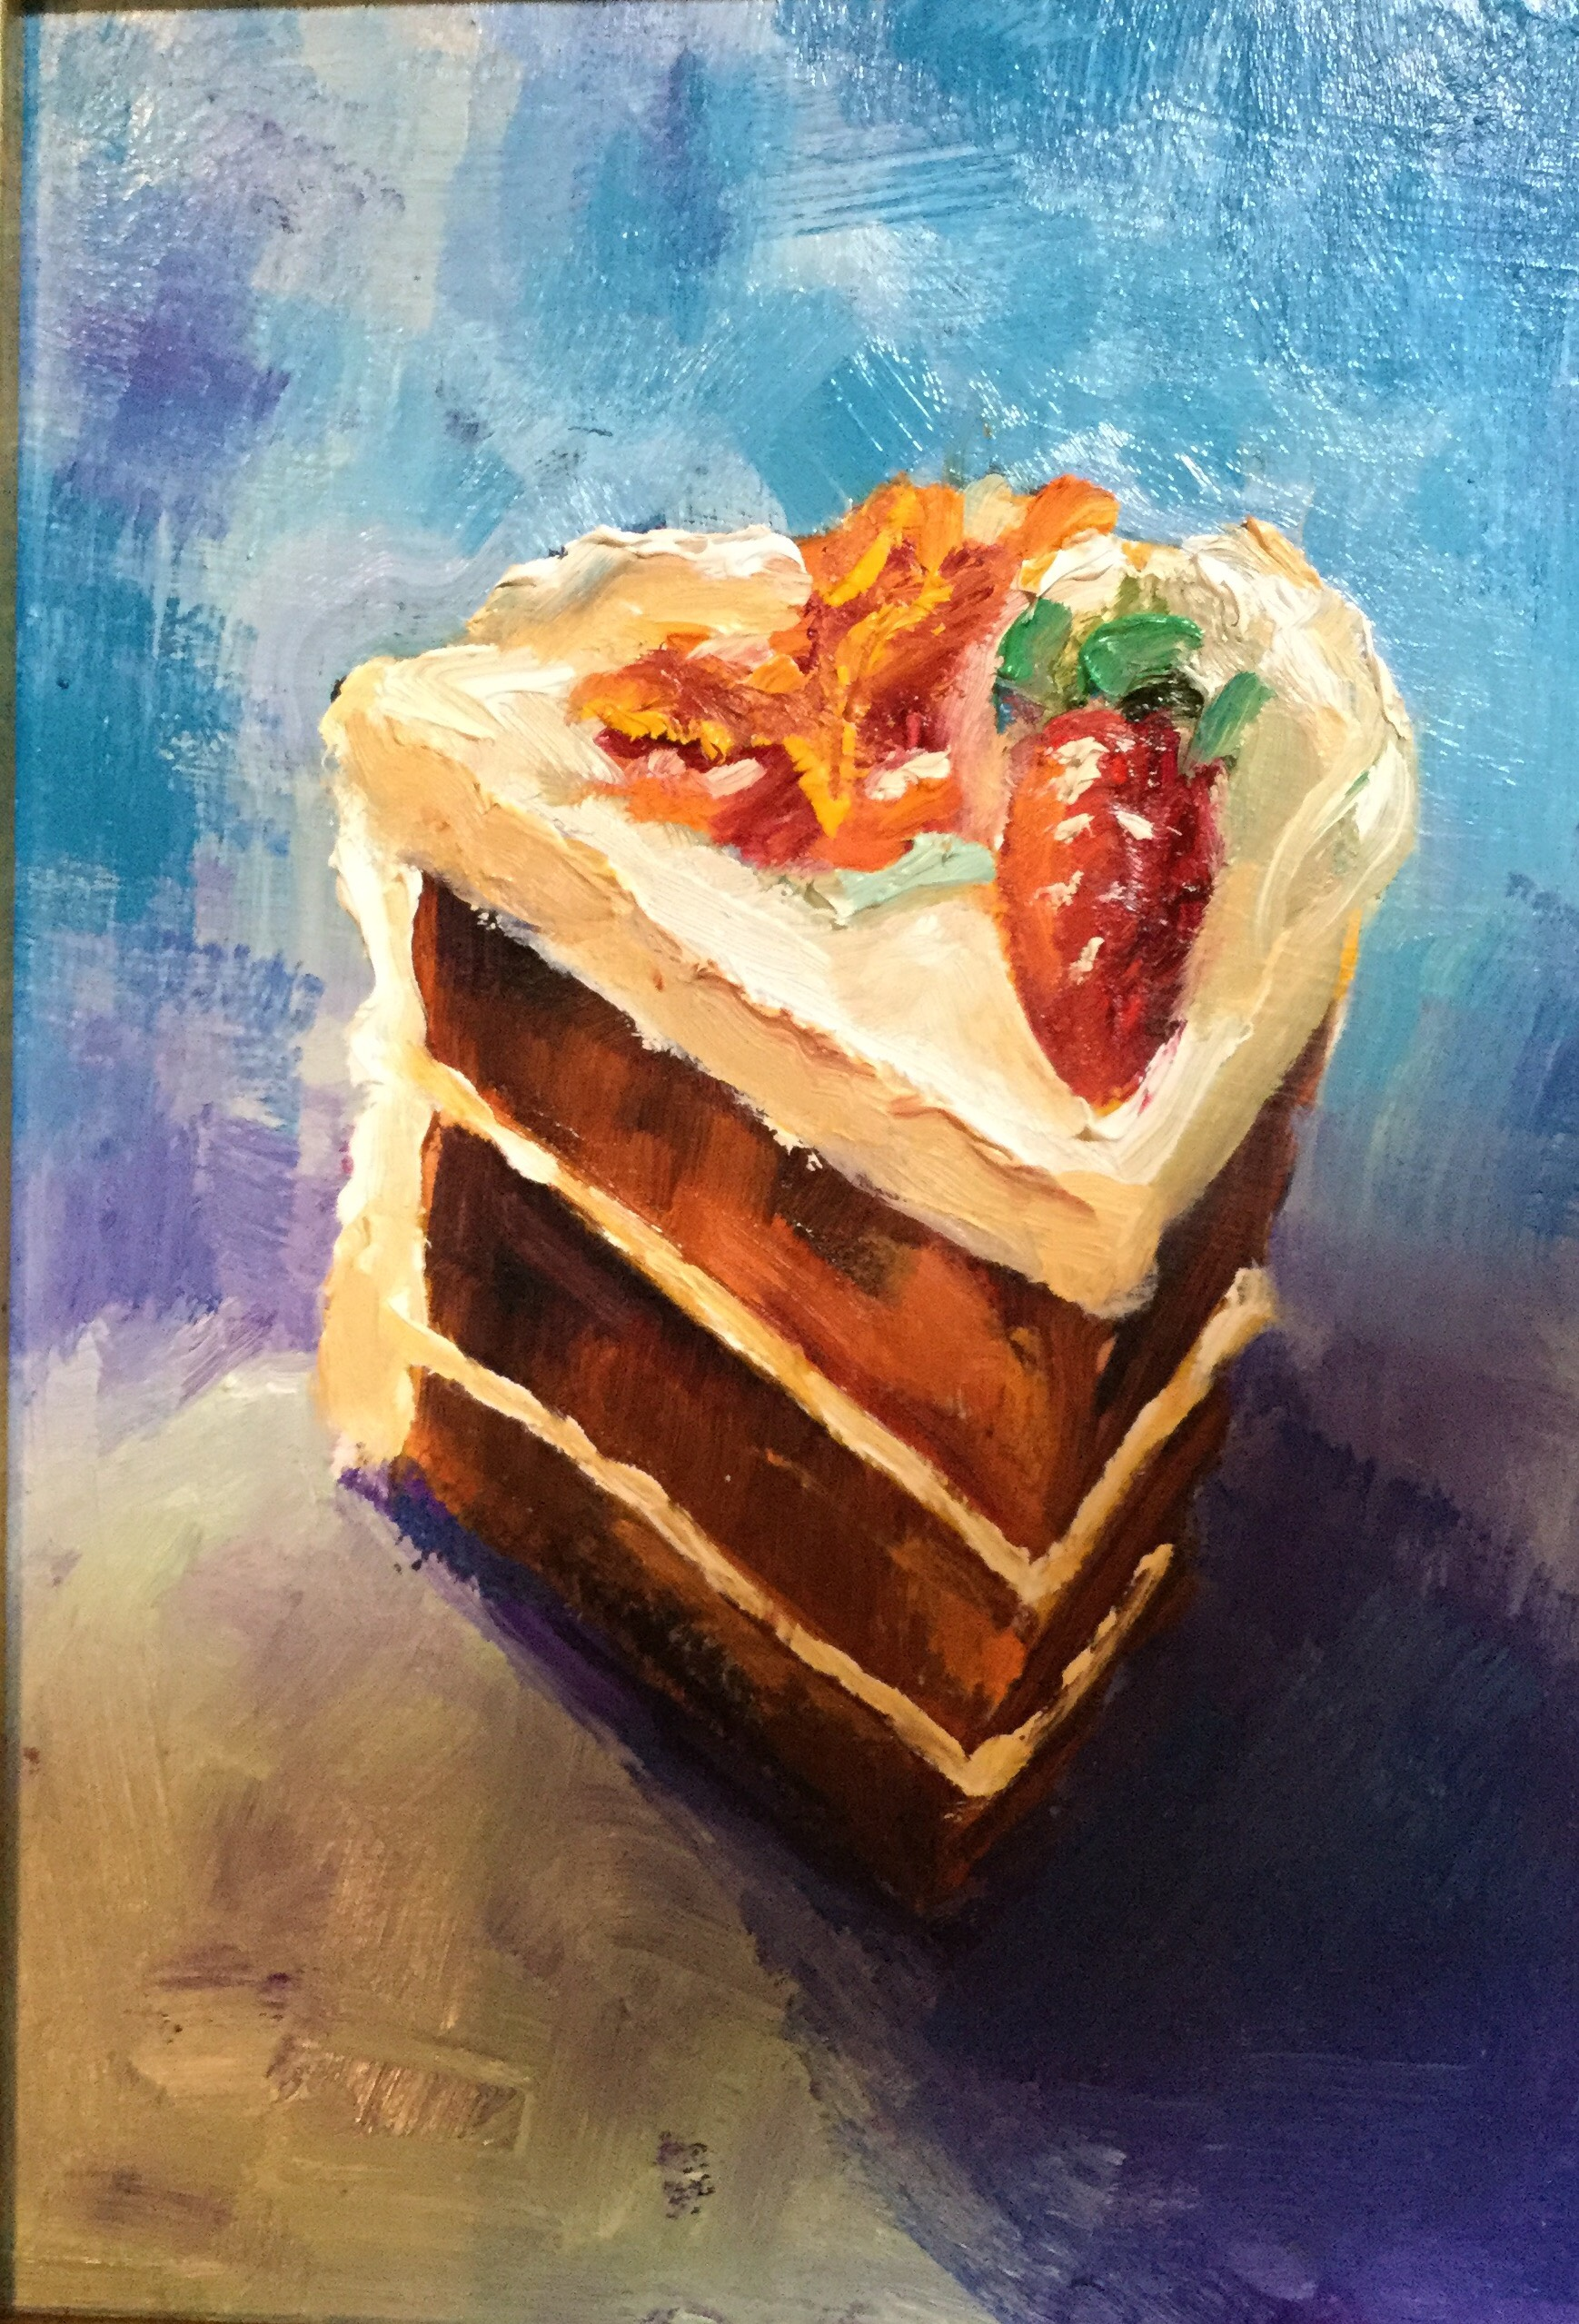 Carrot Cake 3 layers 5x7